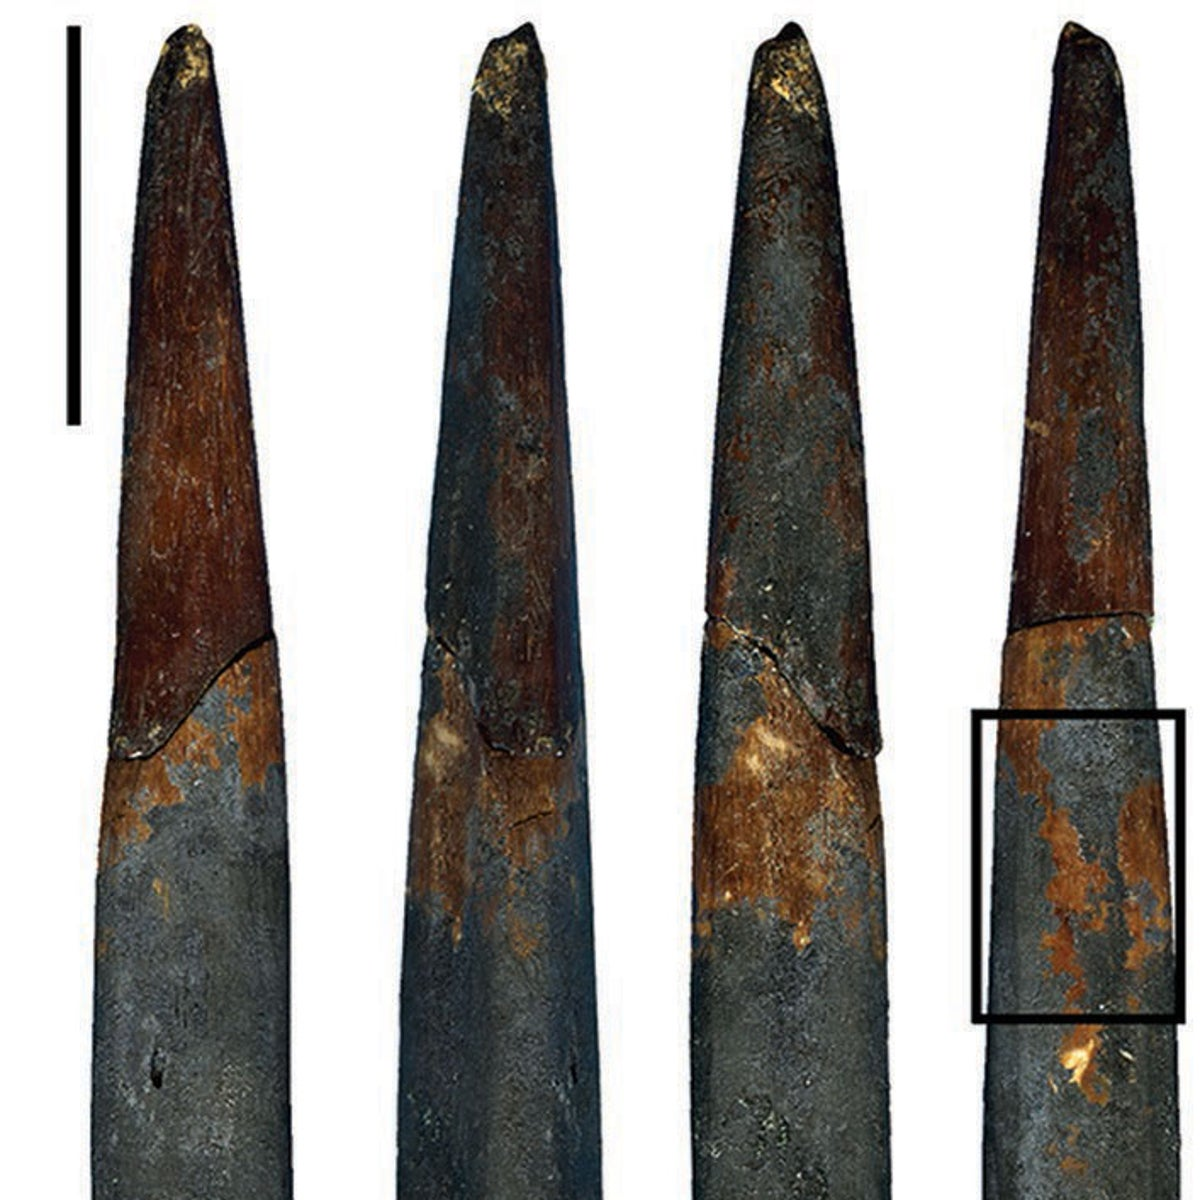 Refitted bone point from Sibudu Cave with a close-up view of the facets produced by a lithic edge. The dark brown surface was probably created by heat. Scale bars = 10mm.